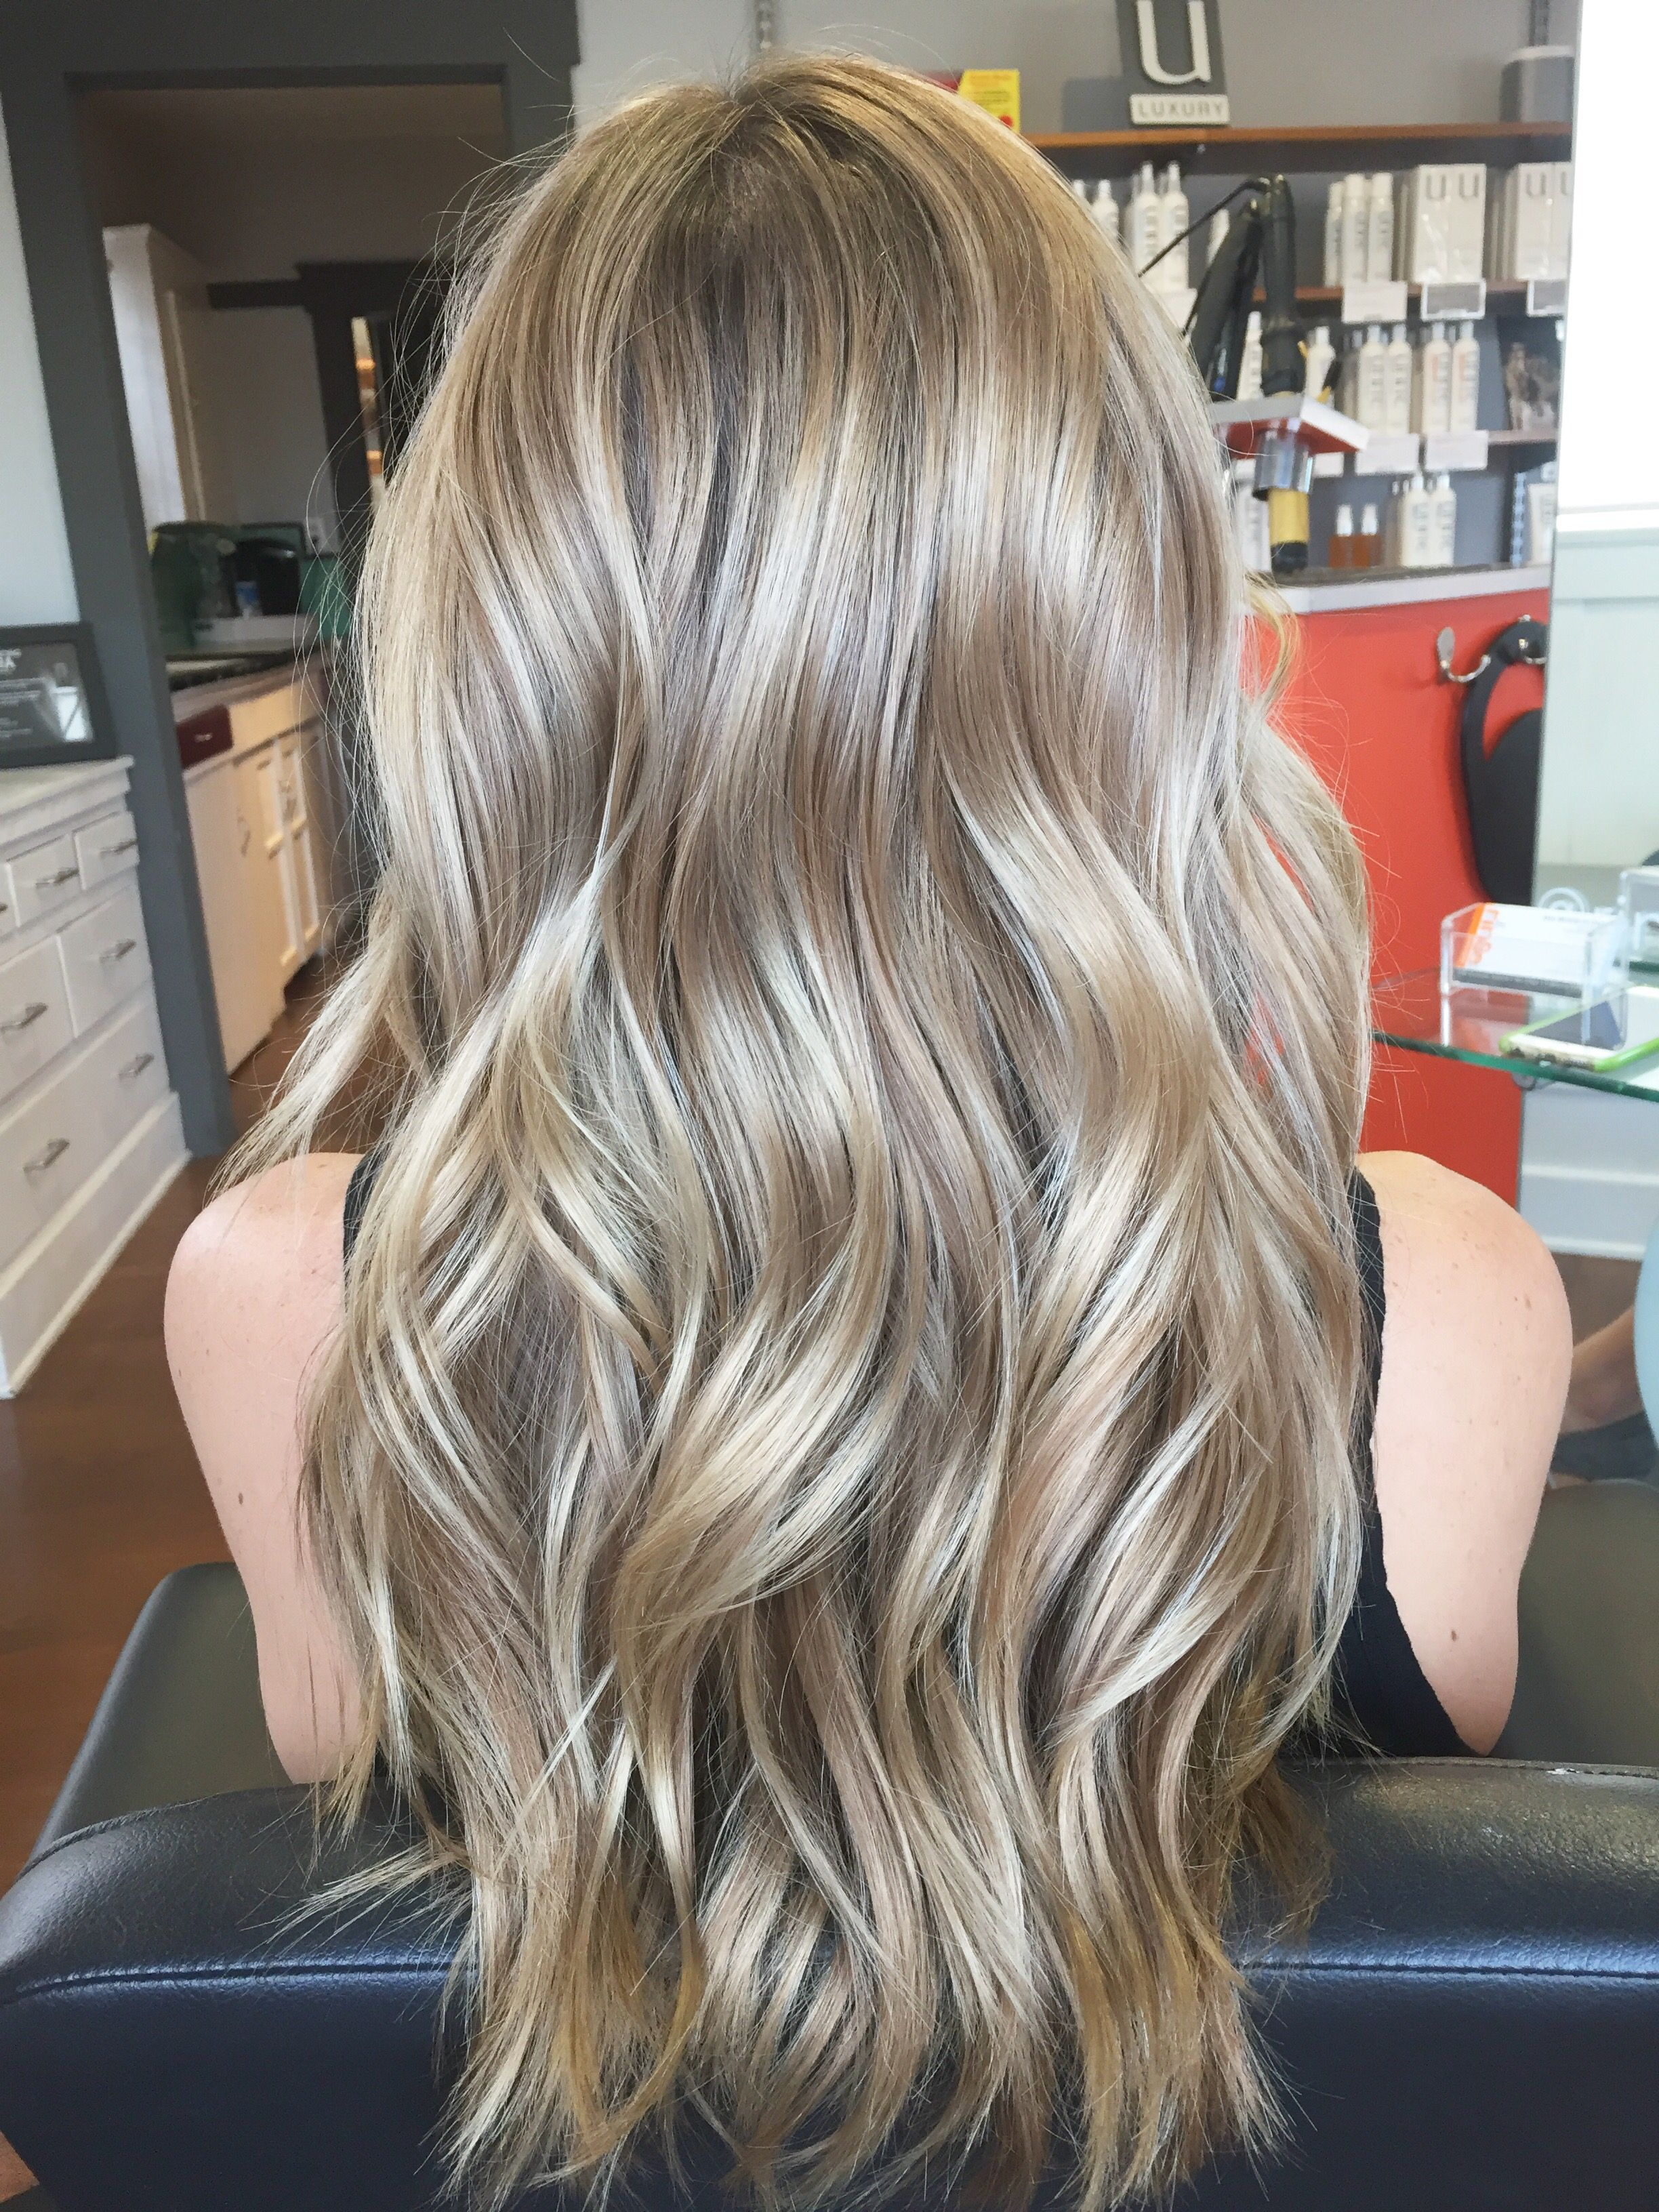 Balayage Hair Painted Her To Create A Beautiful Cool Blonde And Styled Her With Beachy Wave Ash Blonde Hair Colour Dark Blonde Hair Color Light Ash Blonde Hair